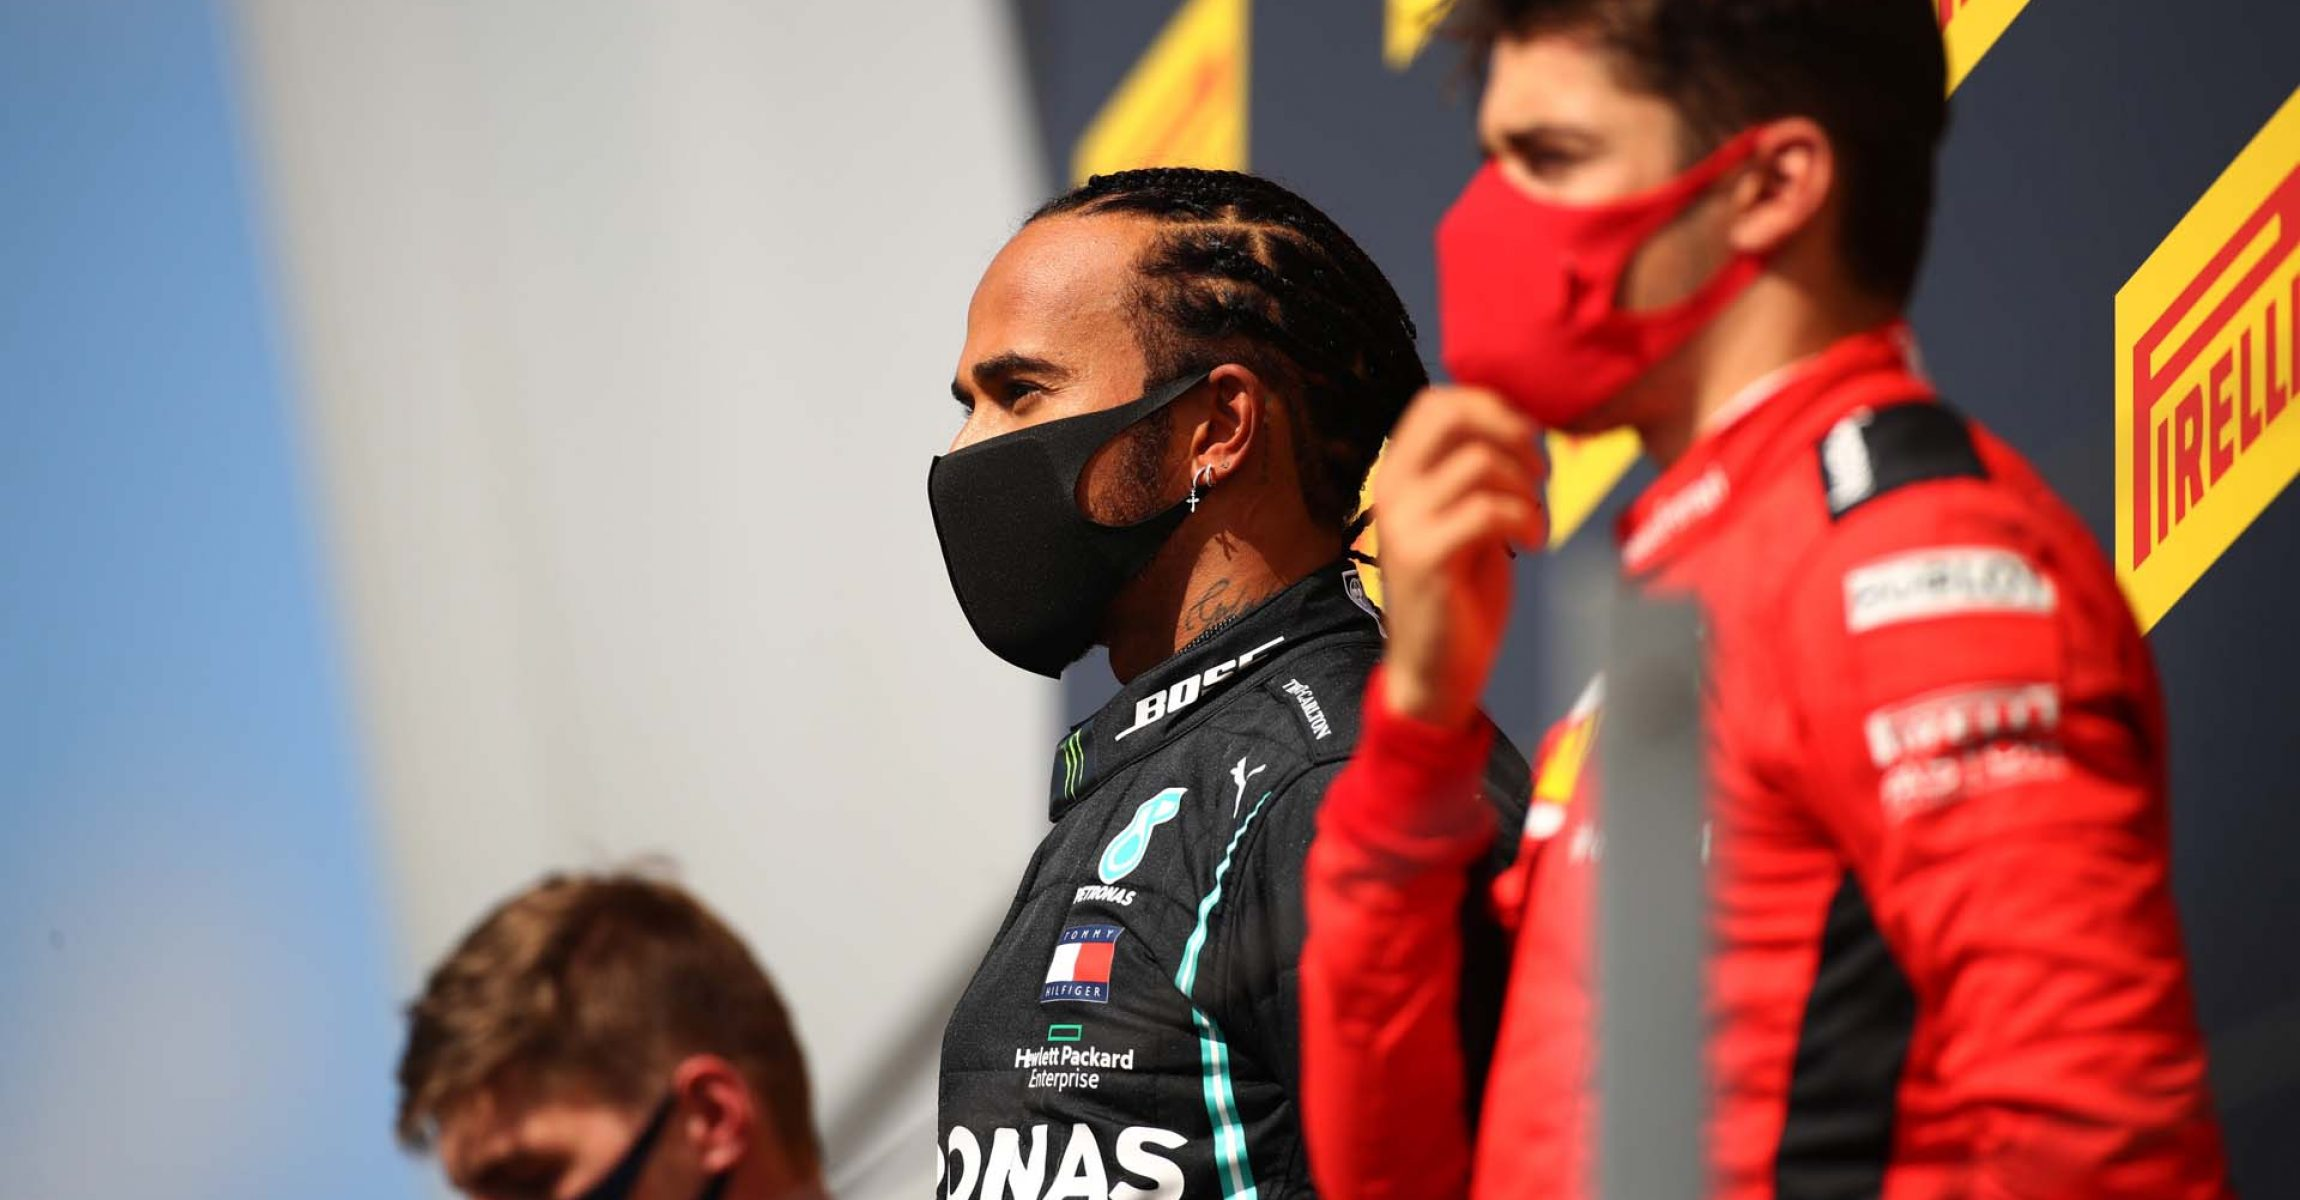 NORTHAMPTON, ENGLAND - AUGUST 02: Race winner Lewis Hamilton of Great Britain and Mercedes GP (C), runner-up Max Verstappen of Netherlands and Red Bull Racing (L) and third-placed Charles Leclerc of Monaco and Ferrari (R) stand on the podium during the F1 Grand Prix of Great Britain at Silverstone on August 02, 2020 in Northampton, England. (Photo by Bryn Lennon/Getty Images) // Getty Images / Red Bull Content Pool  // AP-24TQDPVCH2111 // Usage for editorial use only //